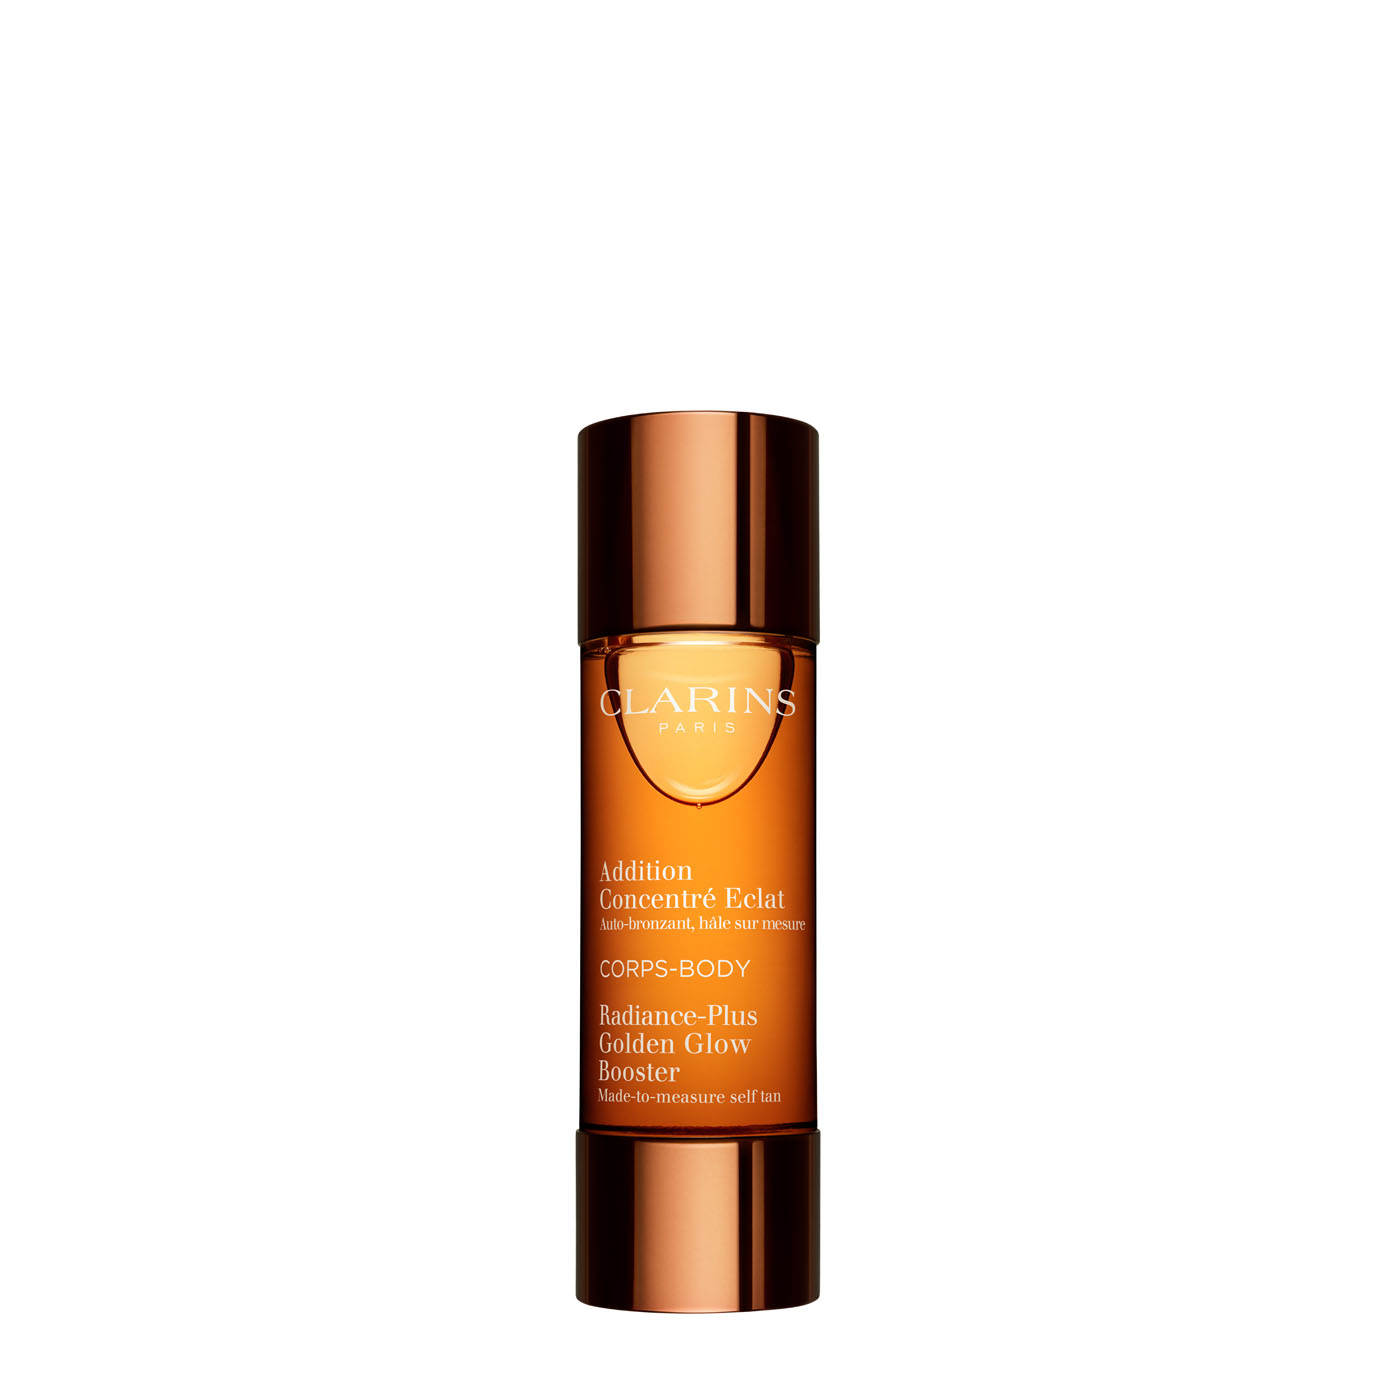 Radiance-Plus%20Golden%20Glow%20Booster%20for%20Body ... f630e5a52